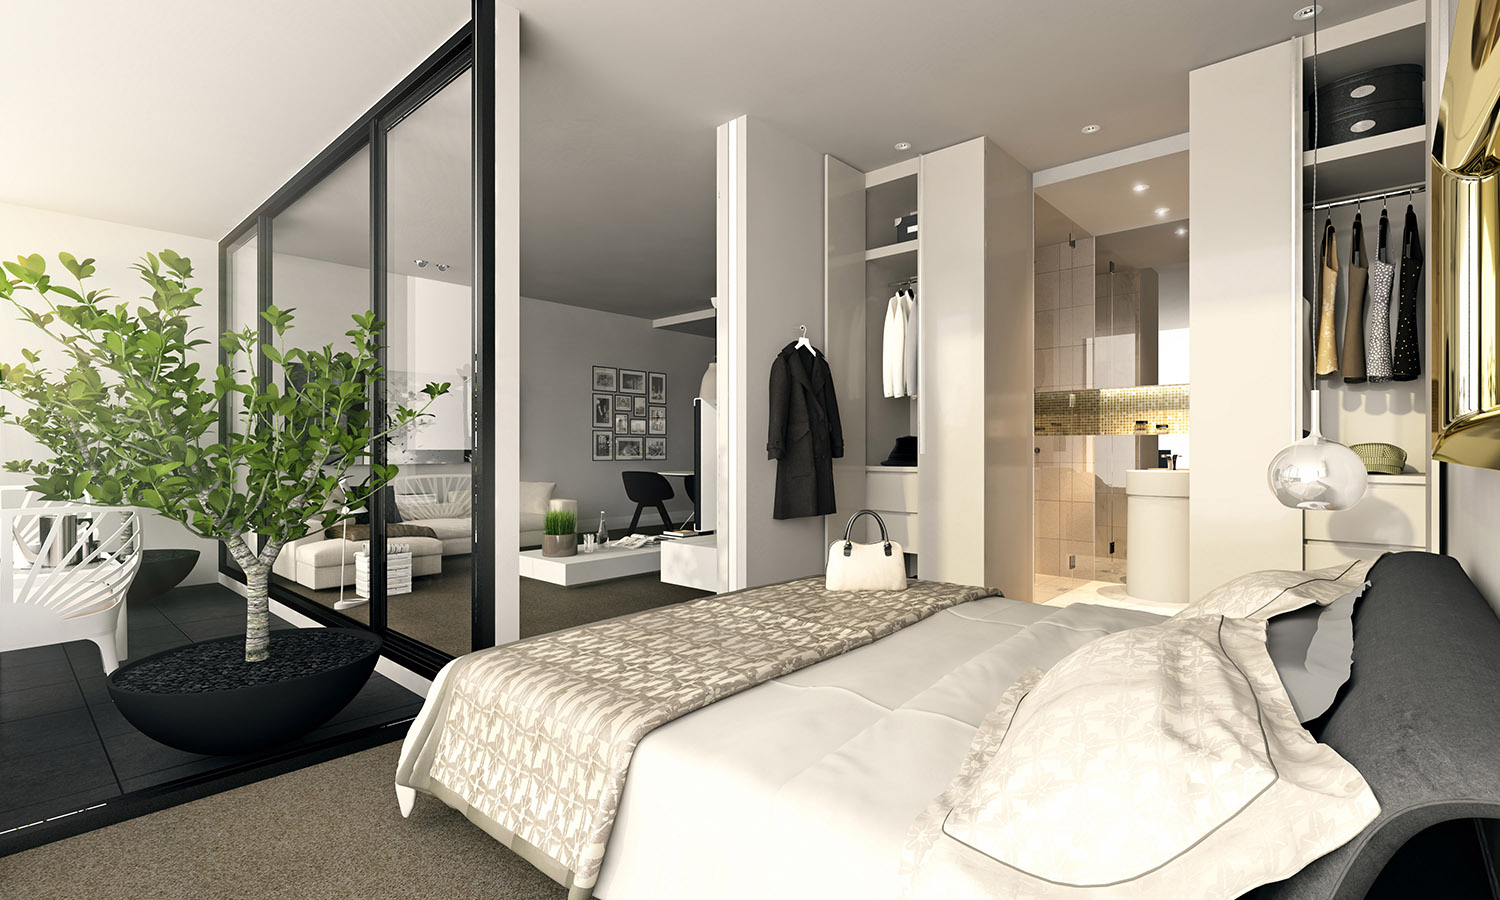 Studio apartment interiors inspiration for Interior design inspiration for bedrooms